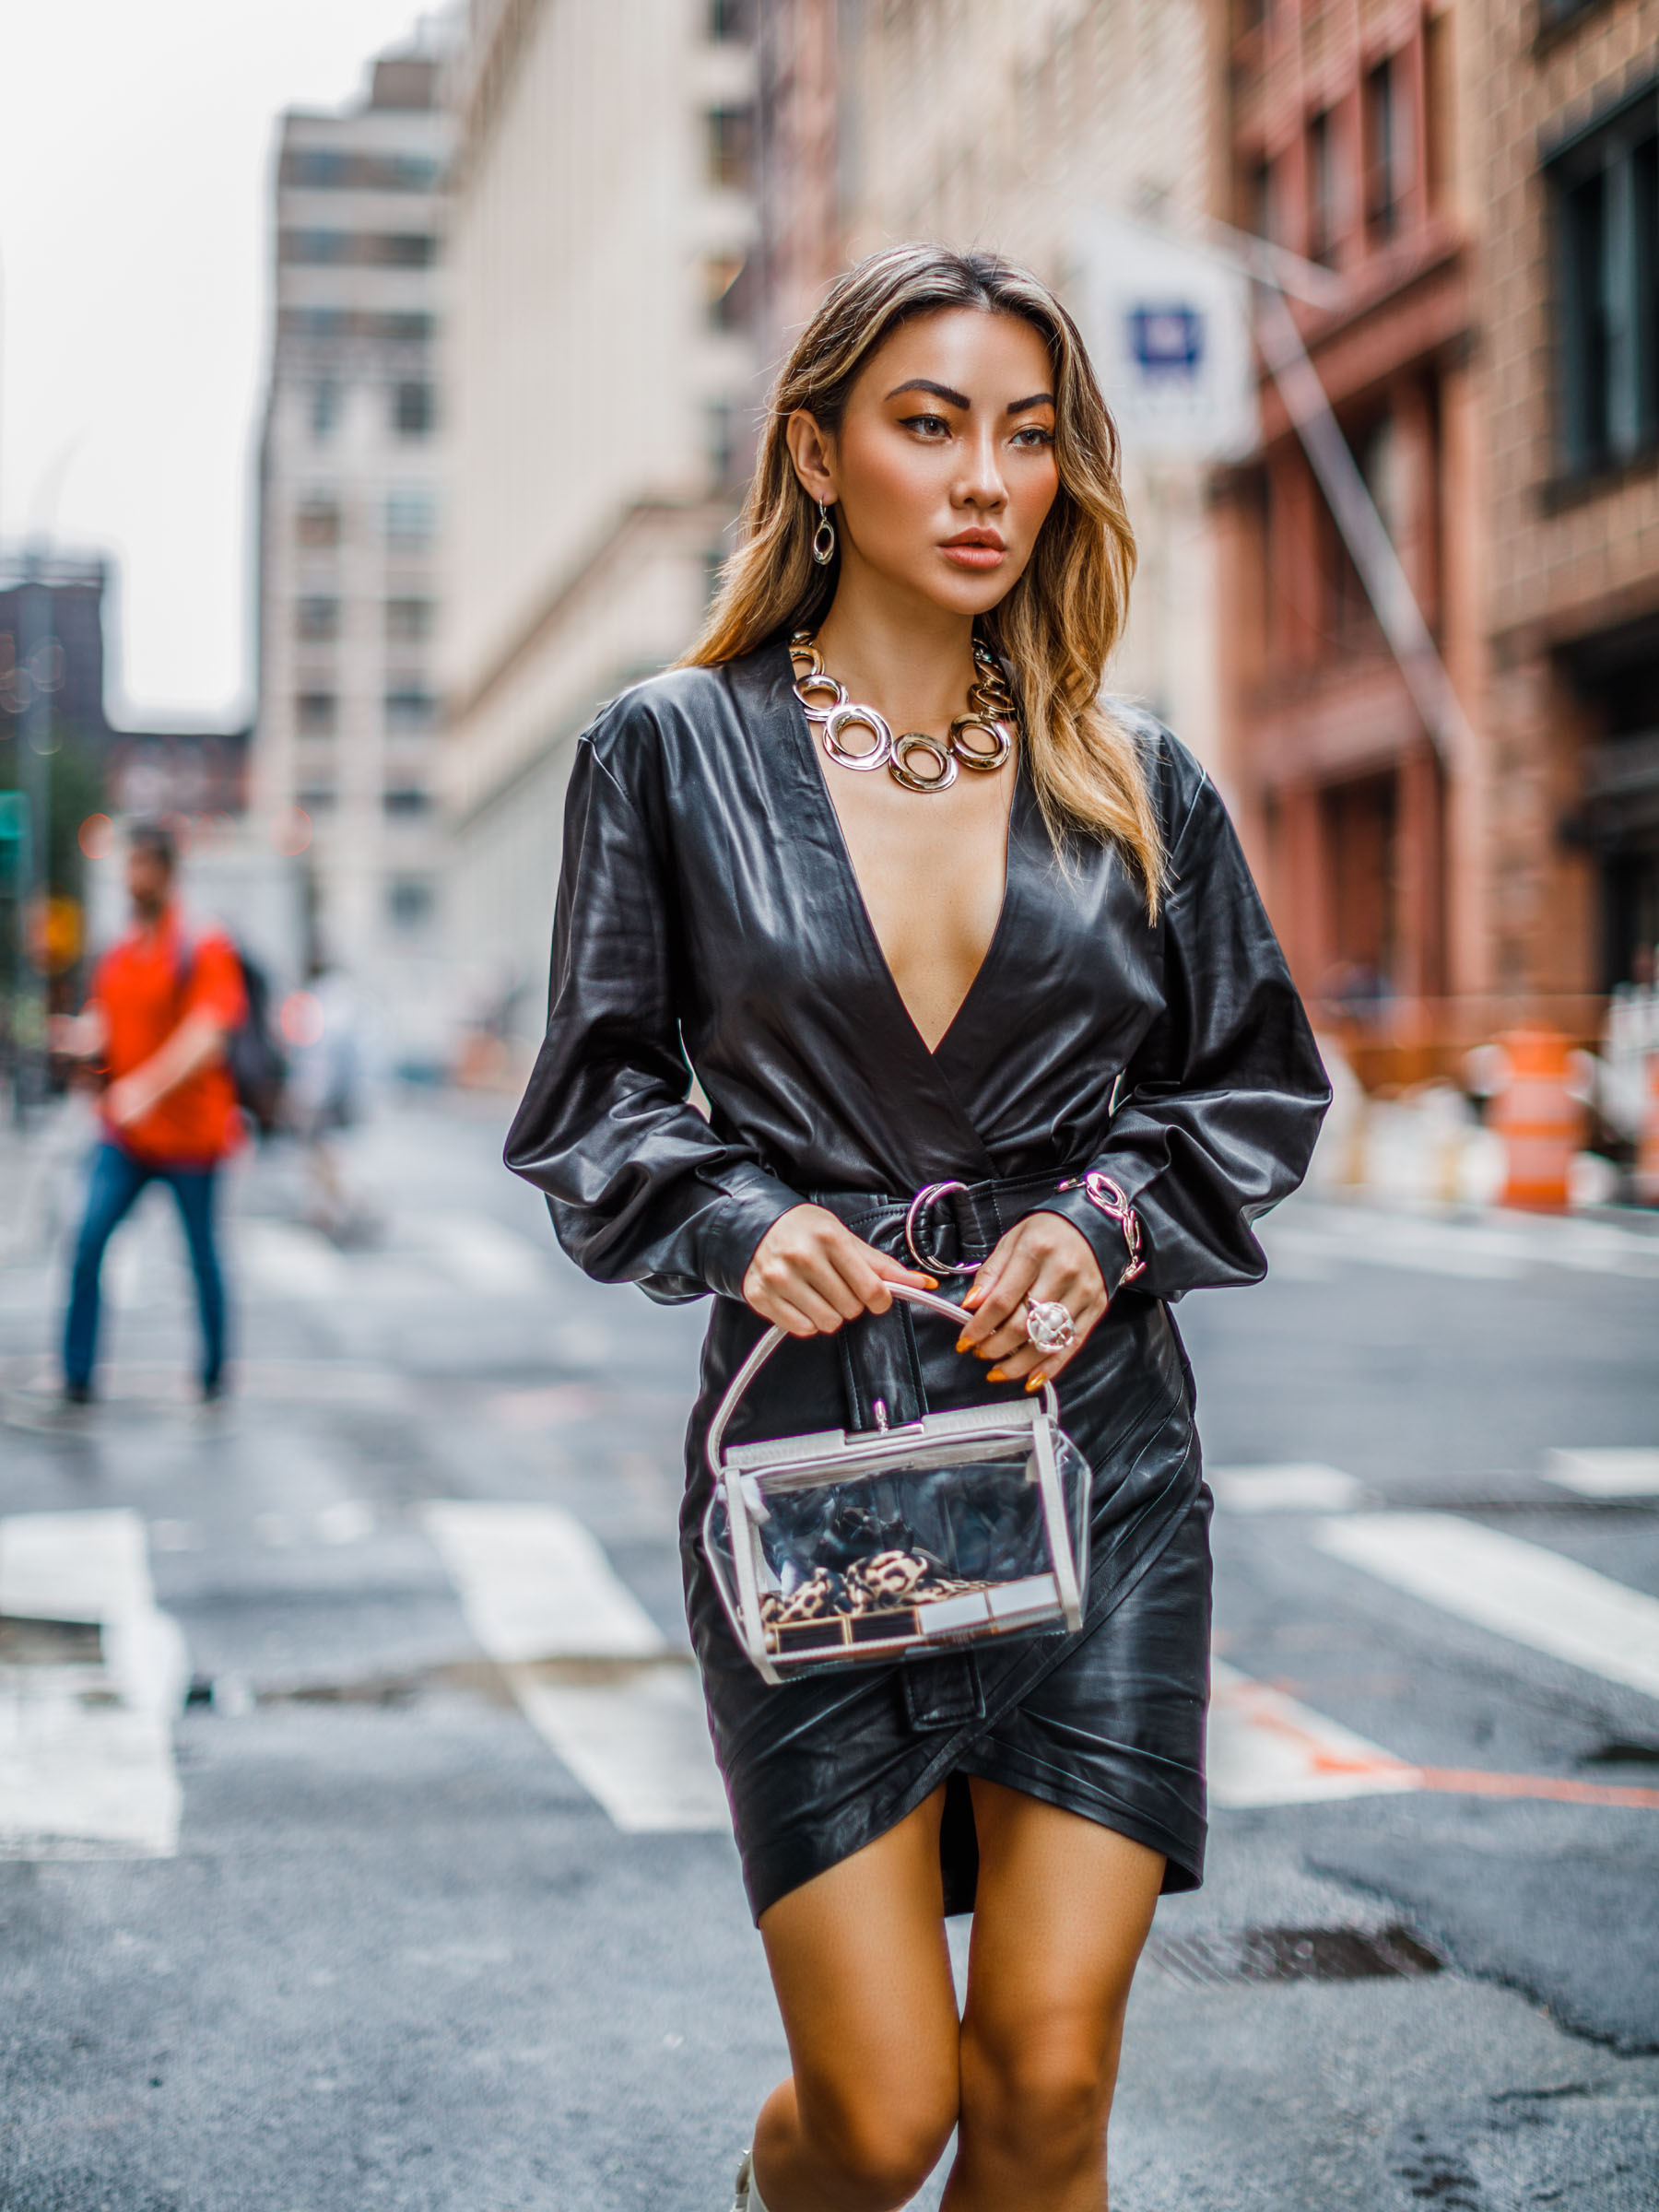 NYFW SS19 Recap, NYFW SS19 Street Style, statement jewelry trend, clear bag trend, french fashion brands, iro dress // Notjessfashion.com